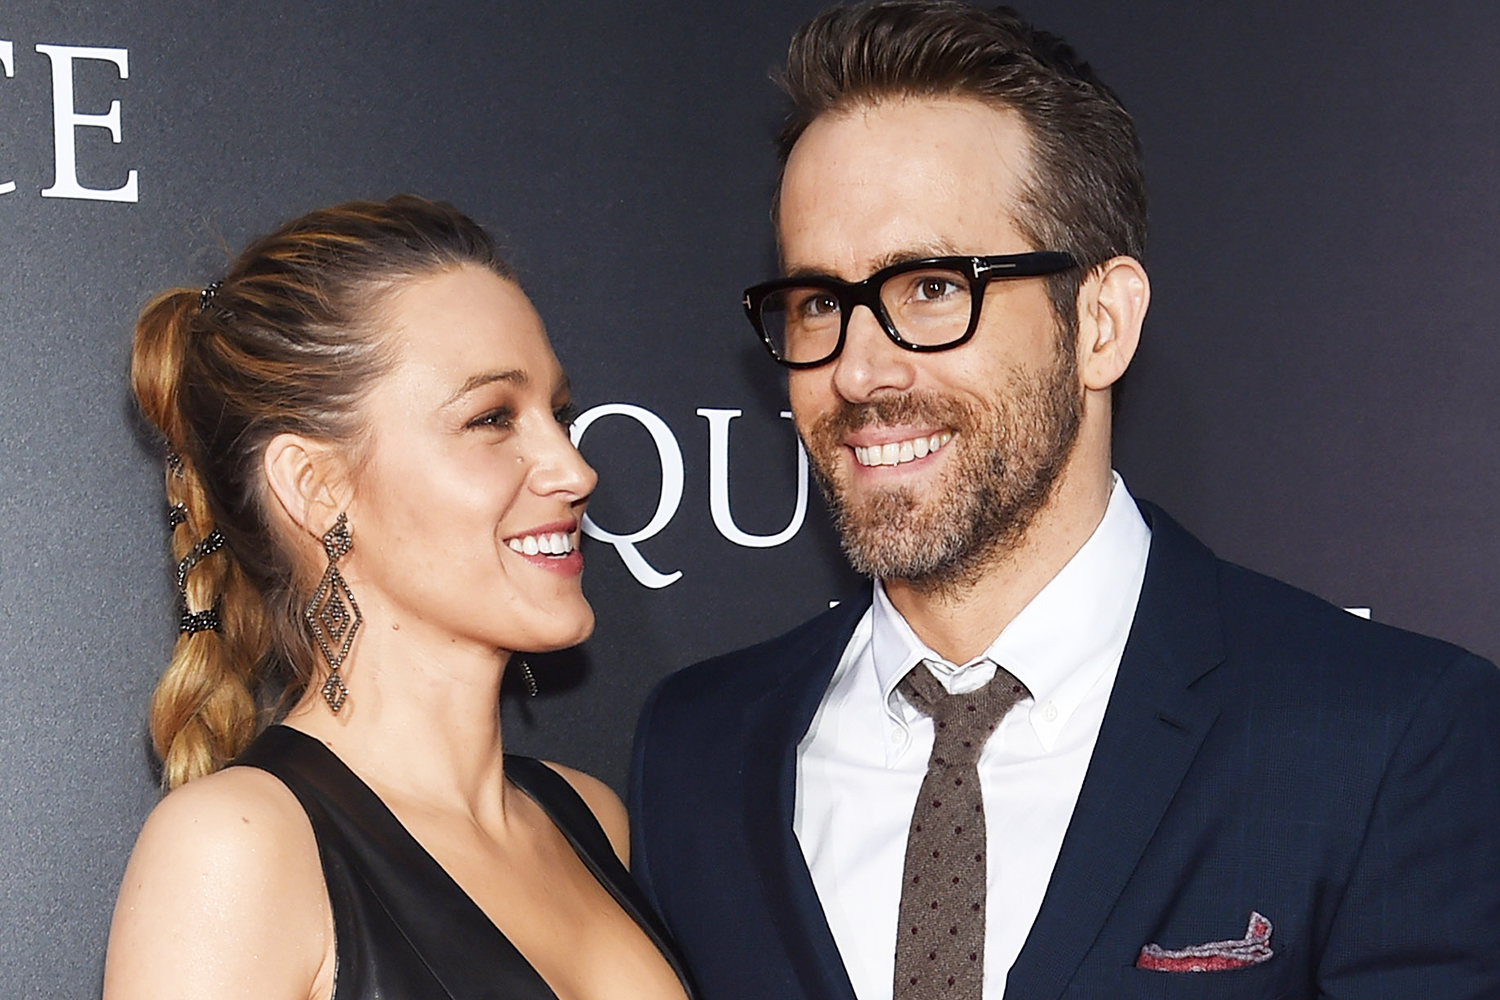 Ryan Reynolds And Blake Lively Wedding.Ryan Reynolds Just Posted The Best Photos Of Blake Lively